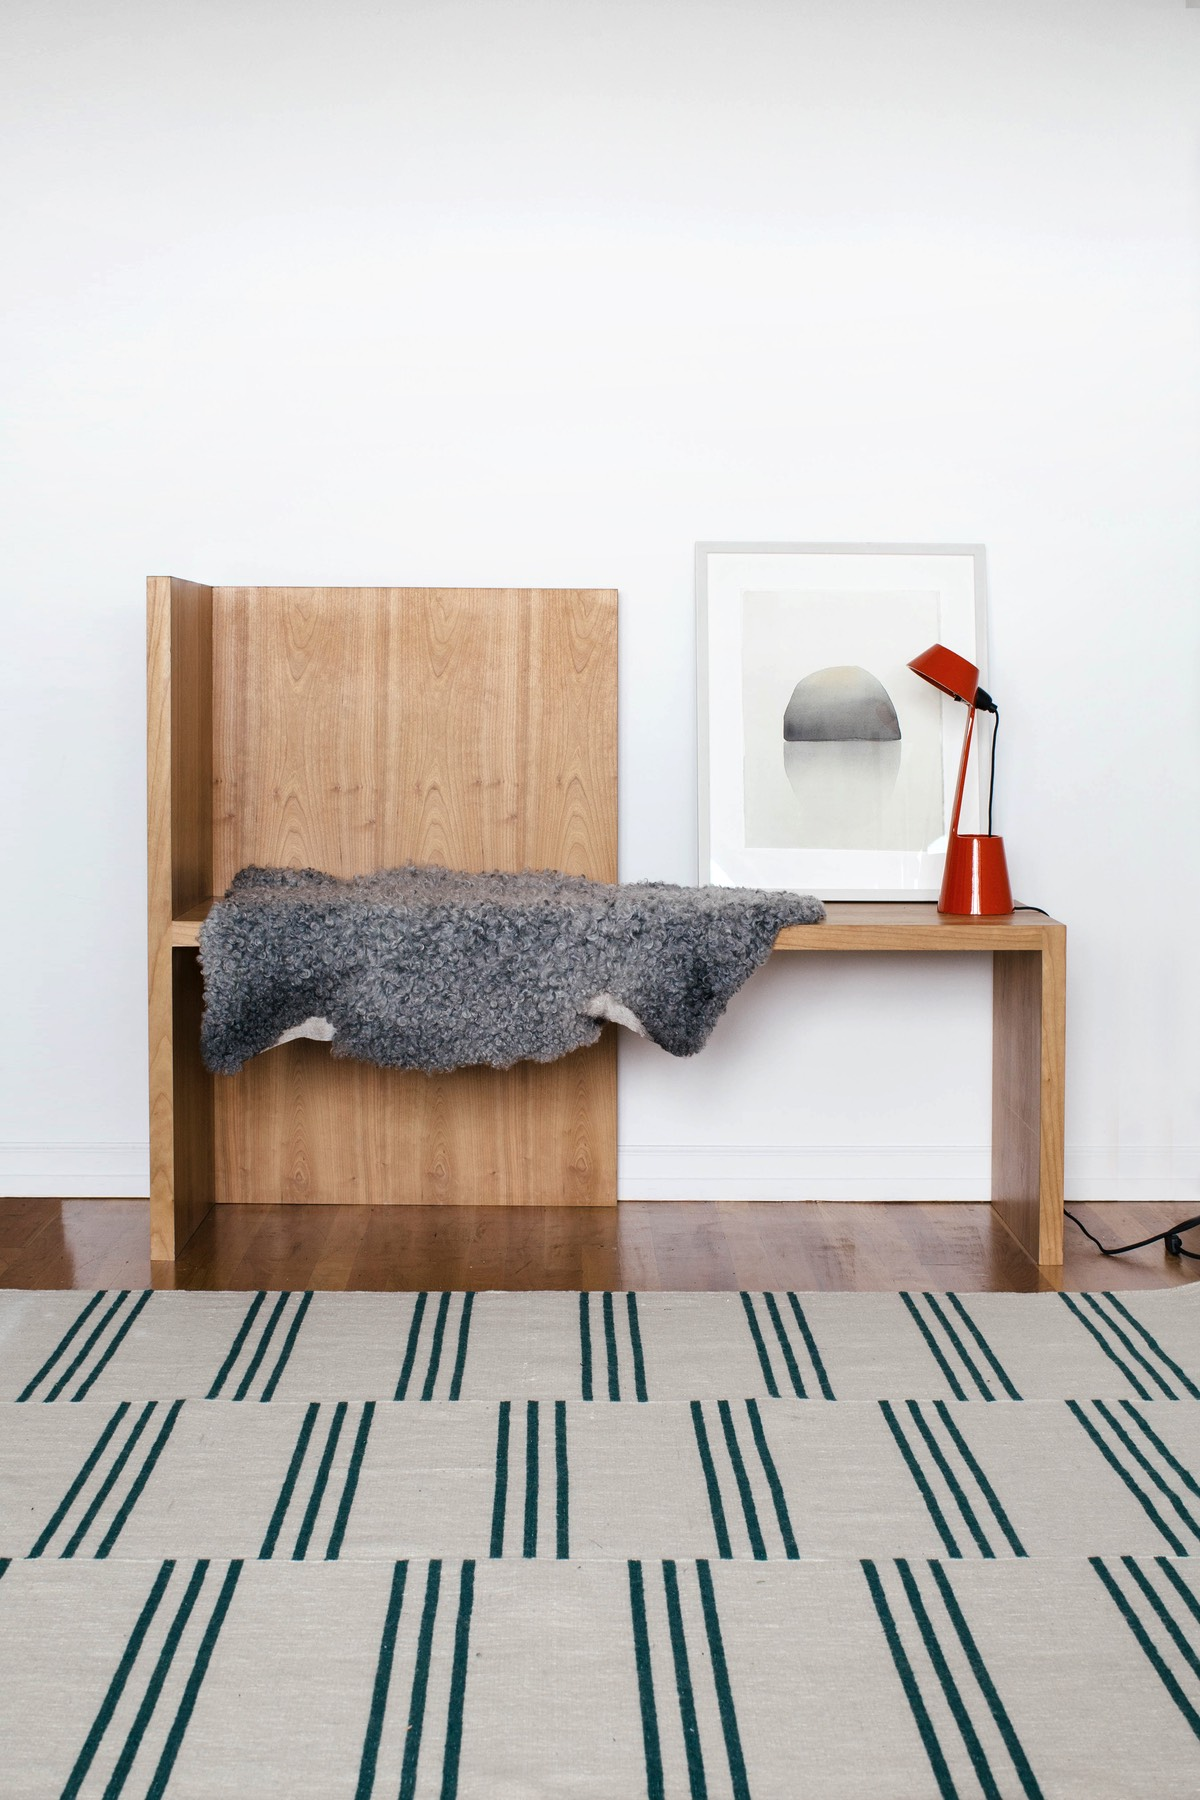 Stripes in Green shown in a white room with a wooden bench behind it.